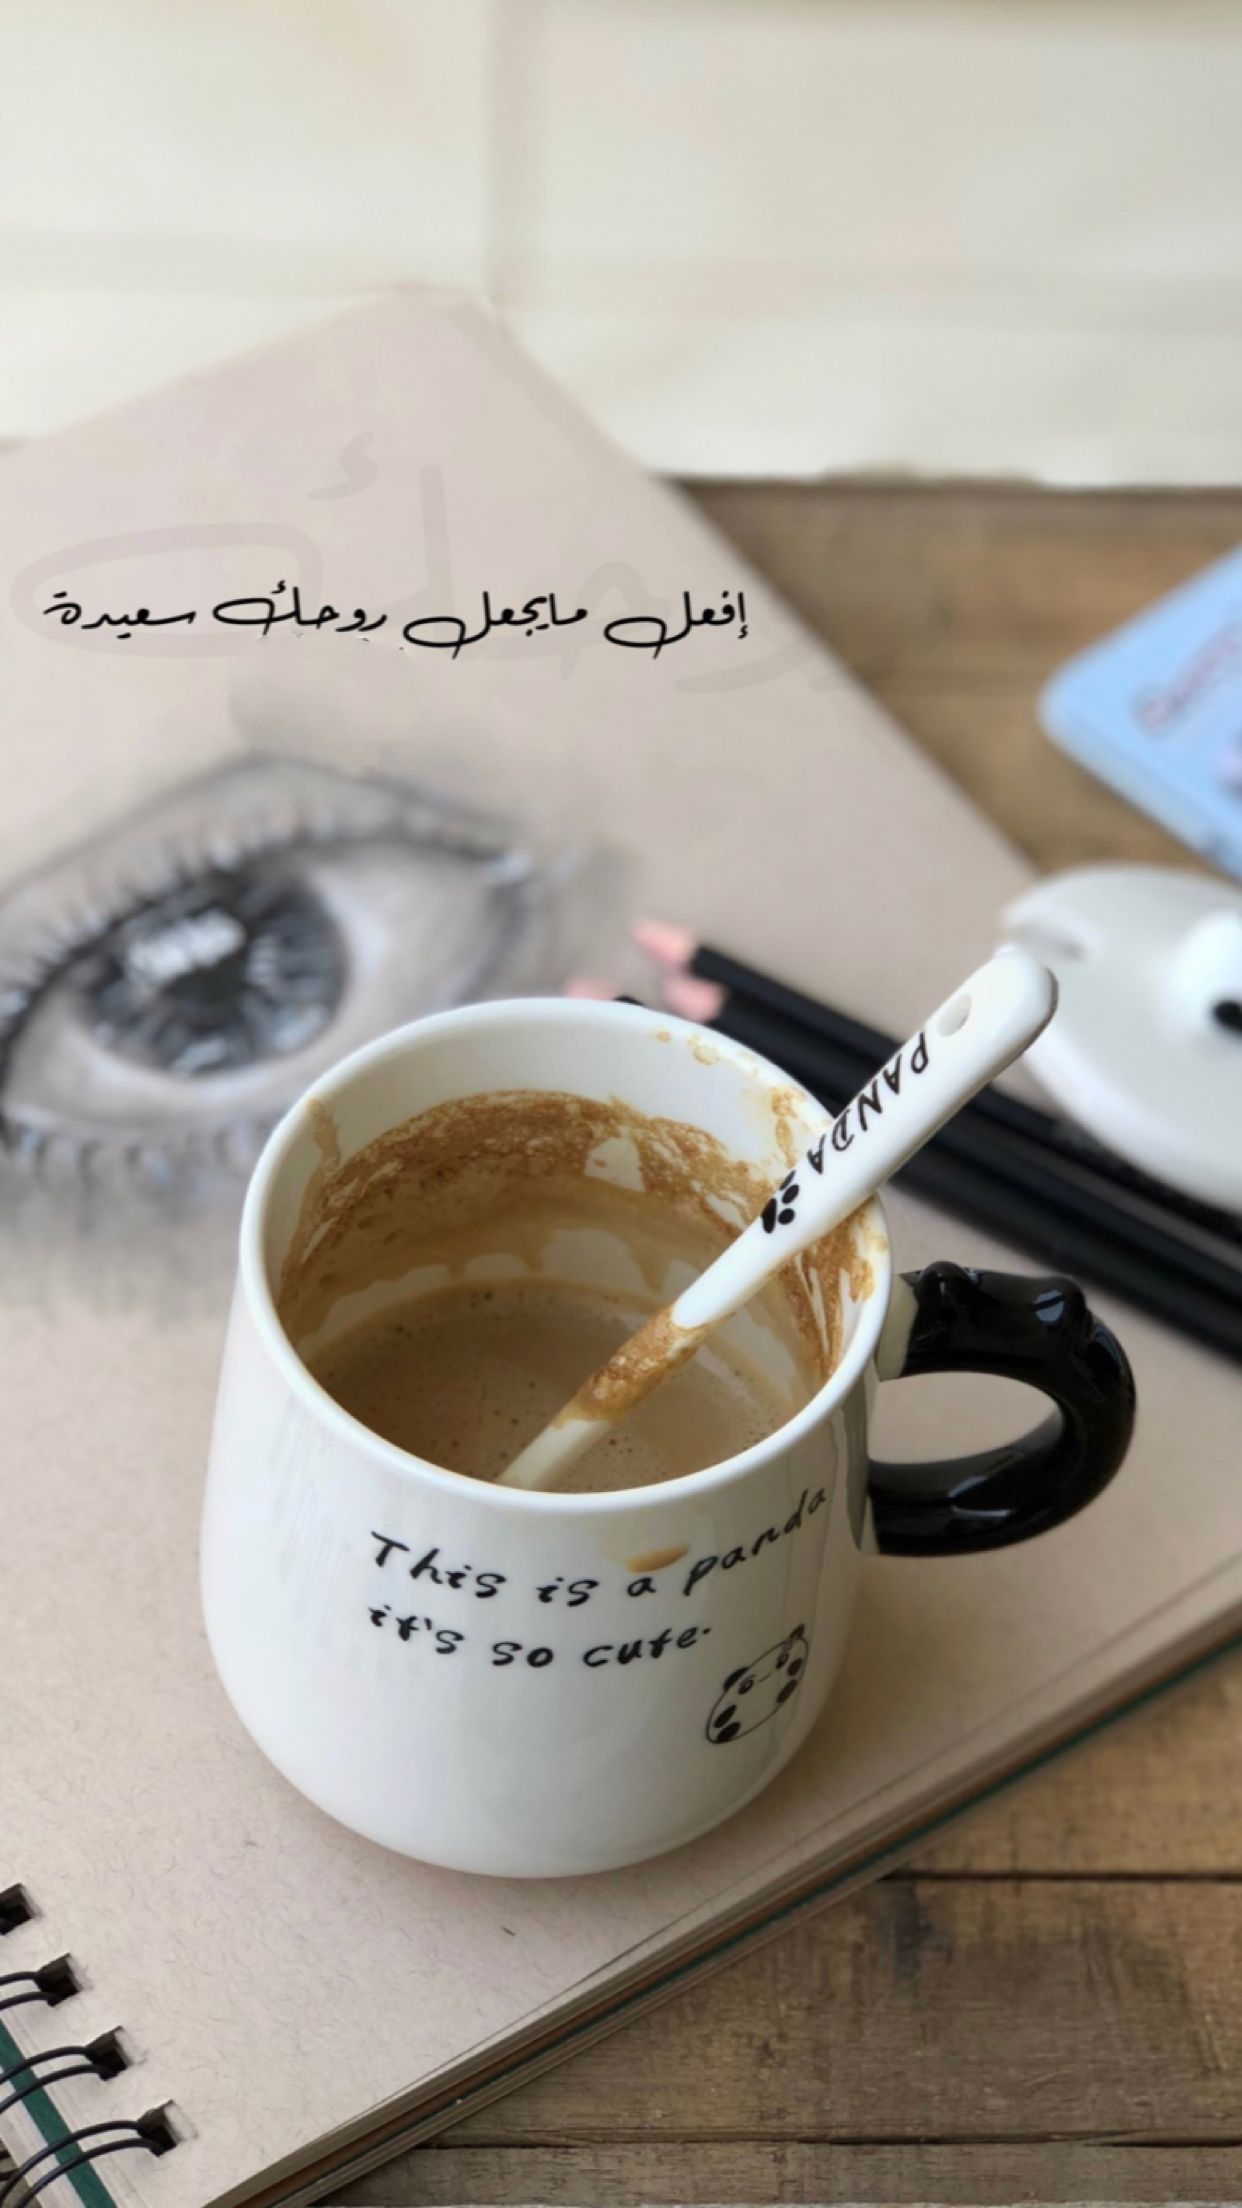 Citaten Koffie English : Pin by حيــاة on سنابات arabic quotes photo quotes quotes